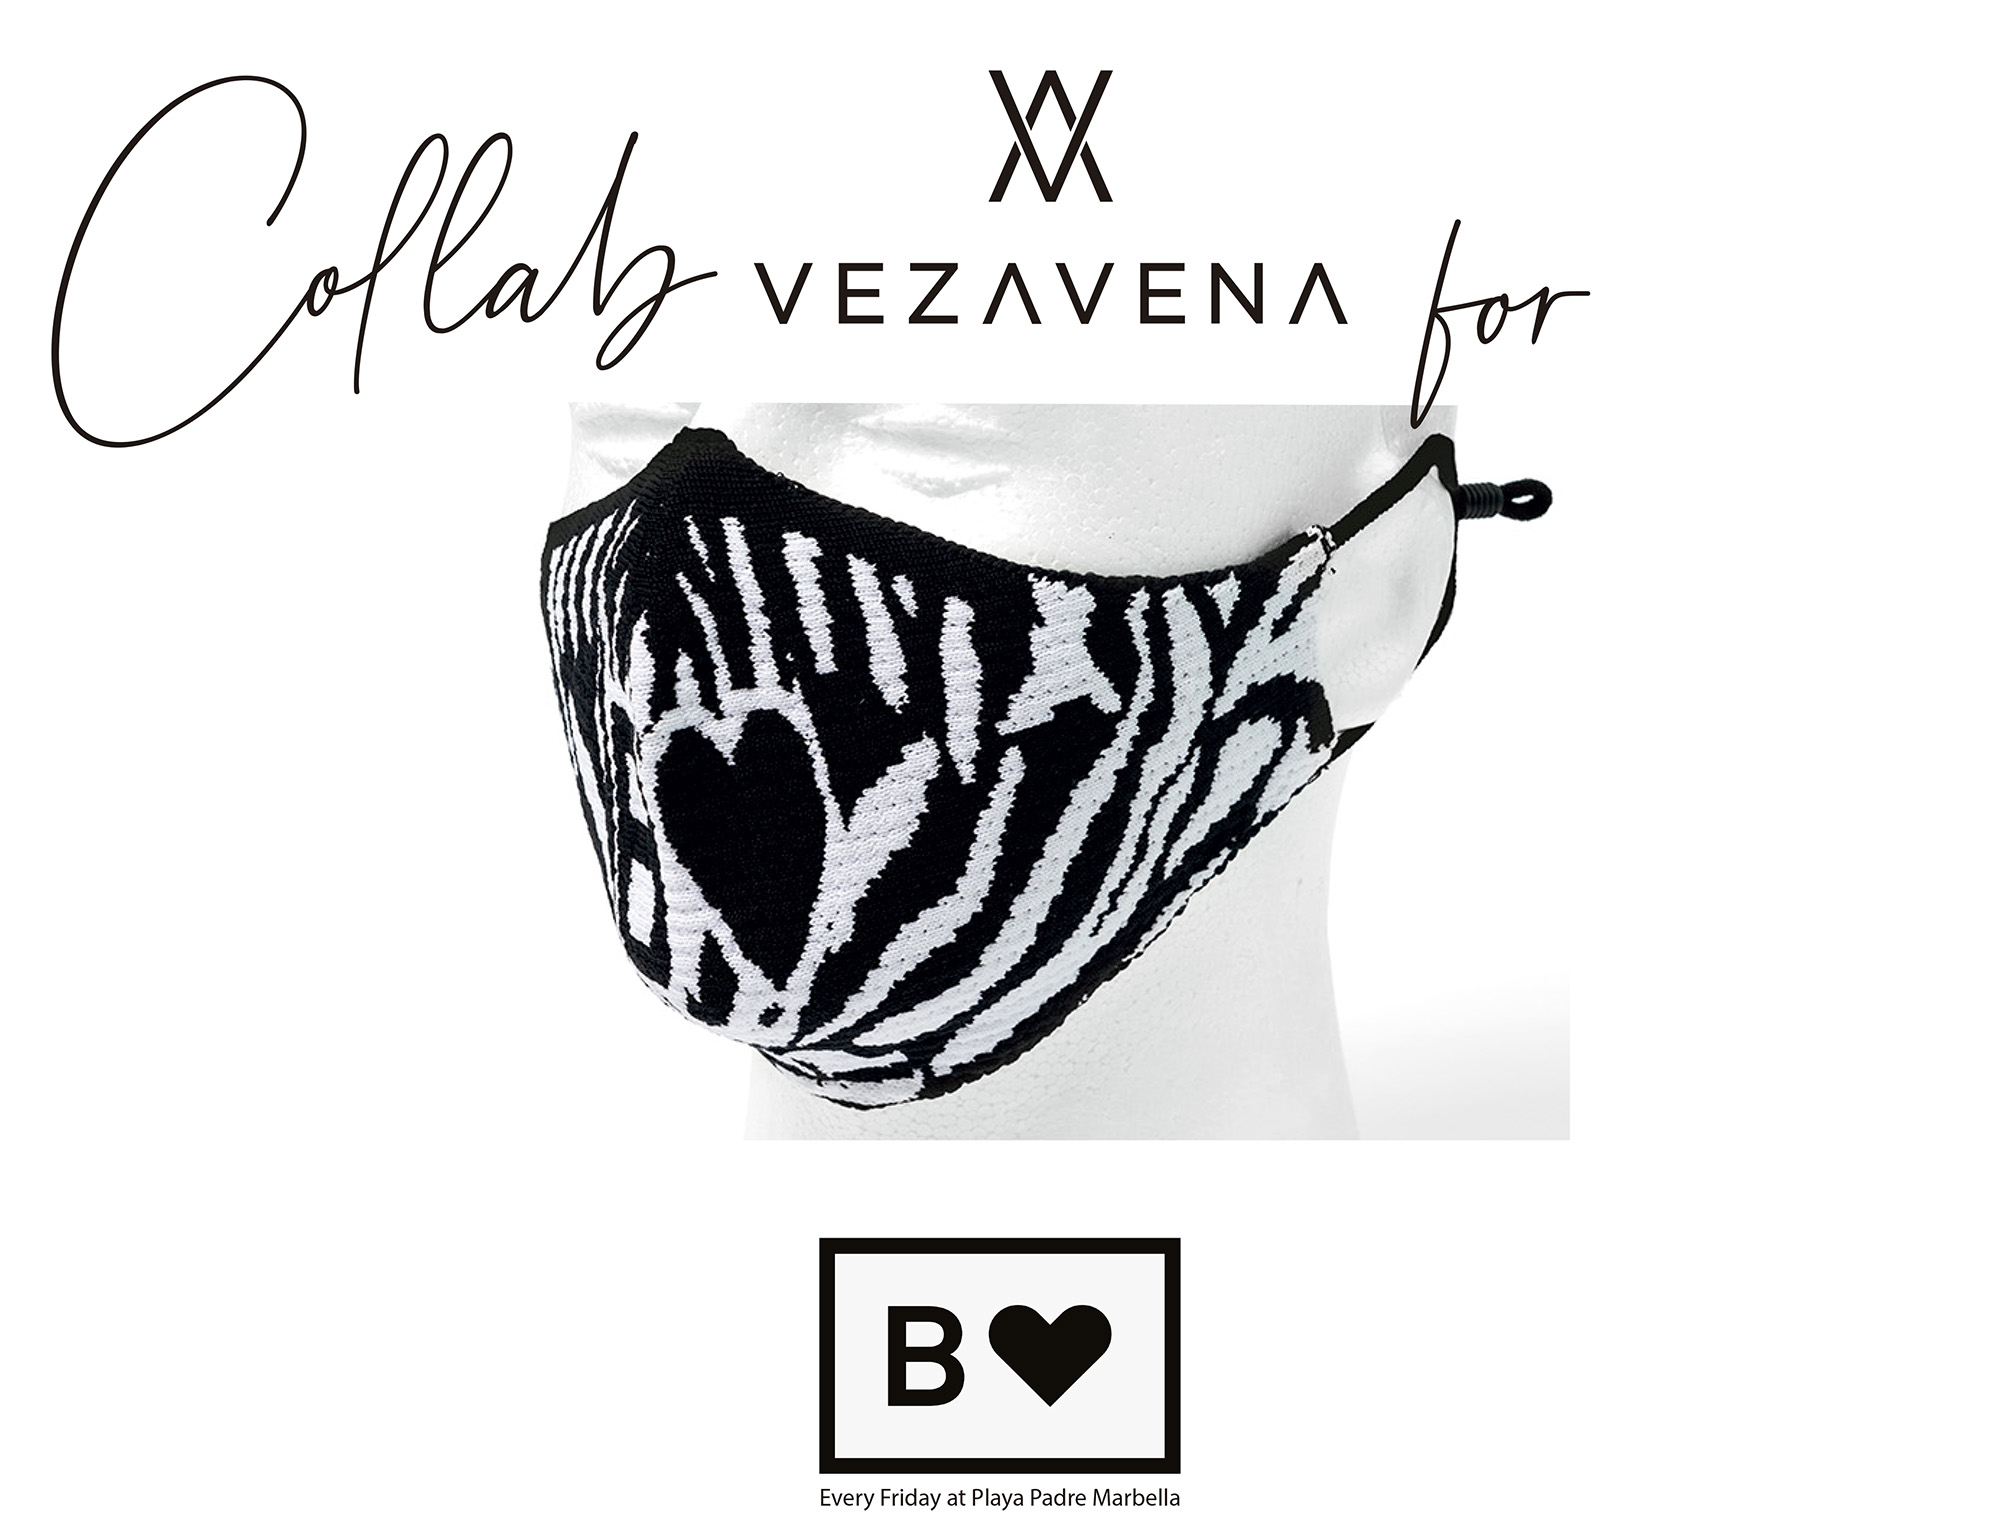 Mask Vezavena & Black Heart Zebra